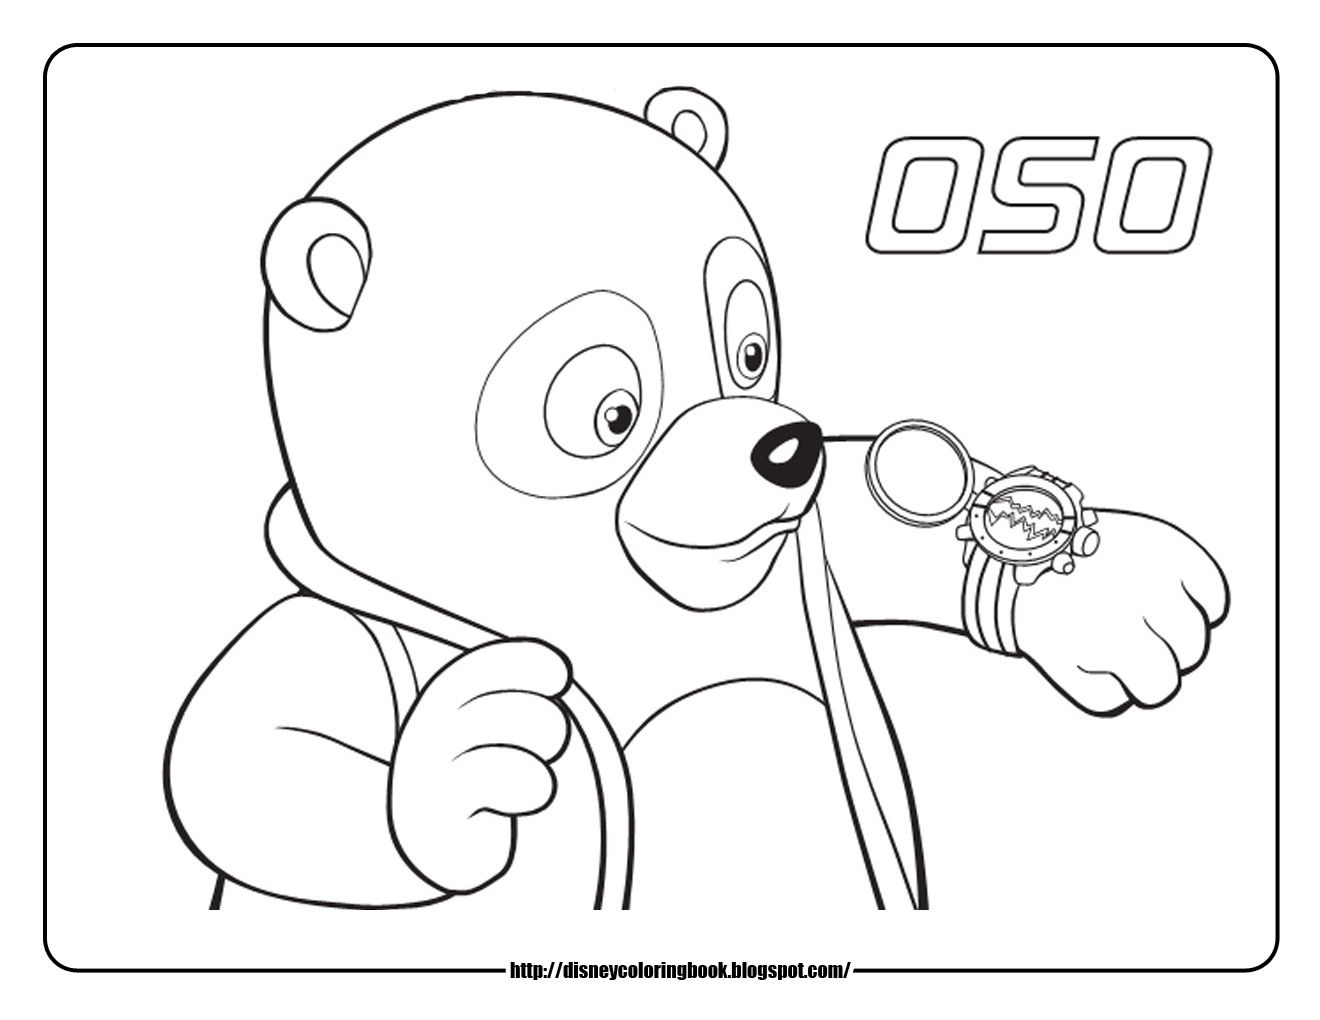 disney jr special agent oso coloring pages - Disney Jr Coloring Pages